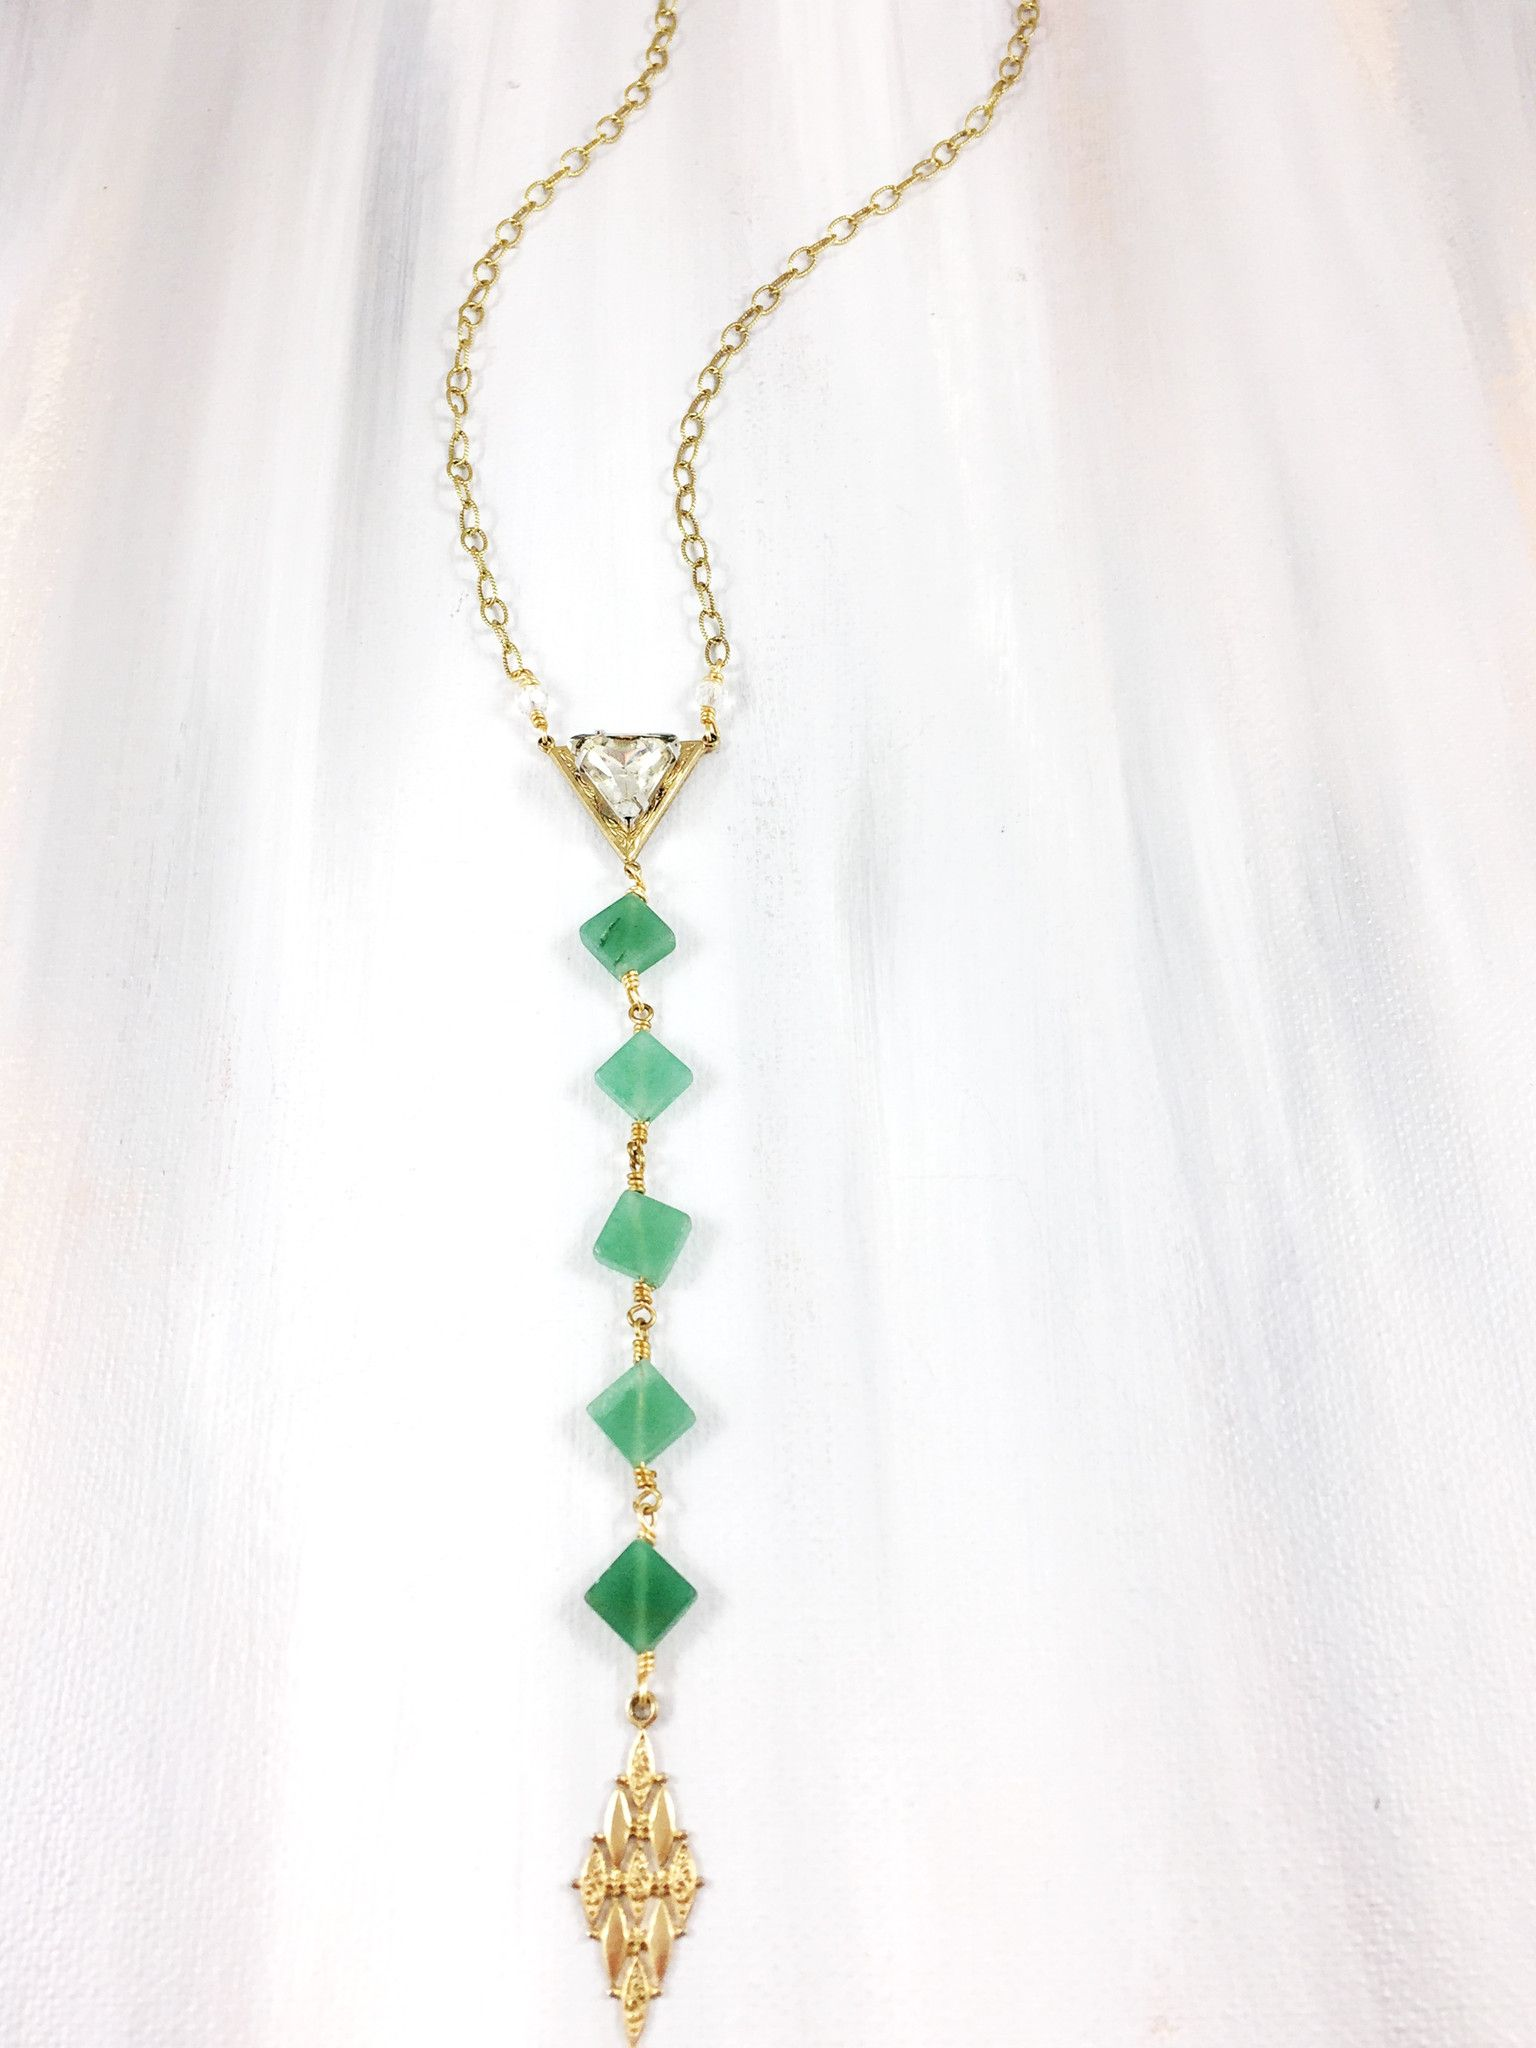 """""""Choral Adoration"""" - Mid century gold and rhinestone triangle pendant paired with carved jade beads and mid century gold drop on delicate antique brass chain"""